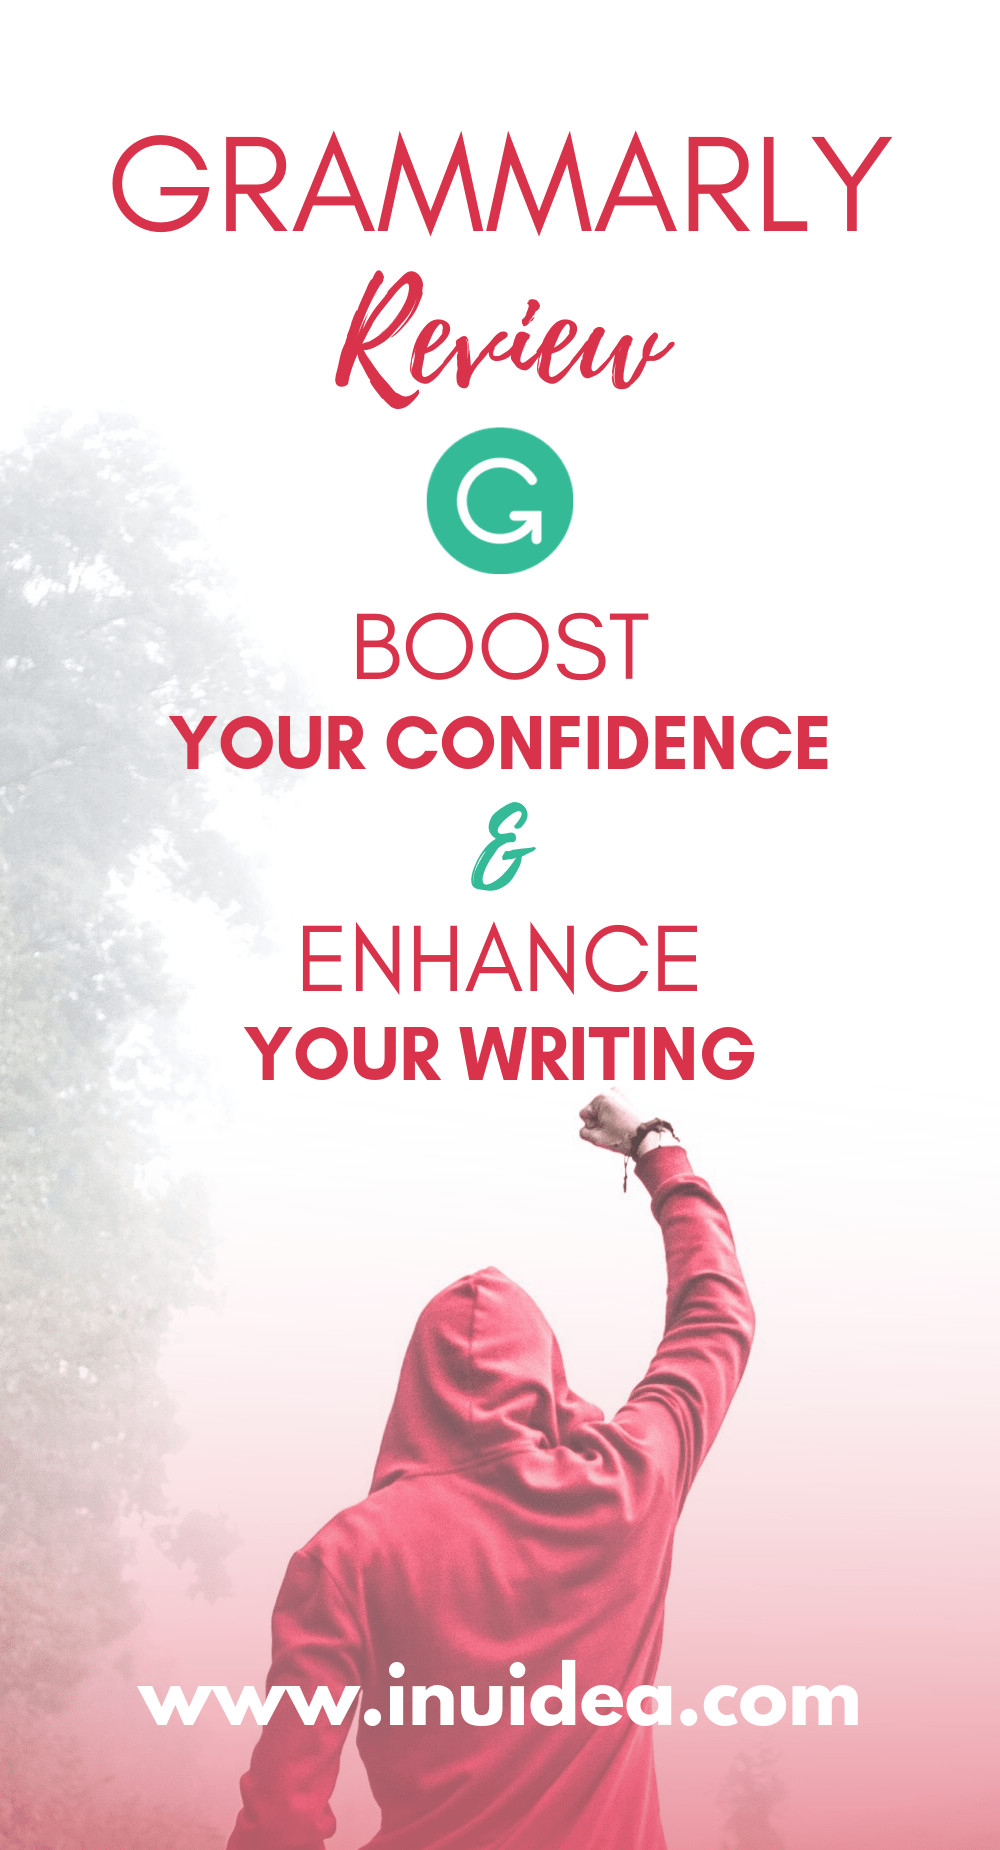 Cheap Grammarly Proofreading Software Buy 1 Get 1 Free